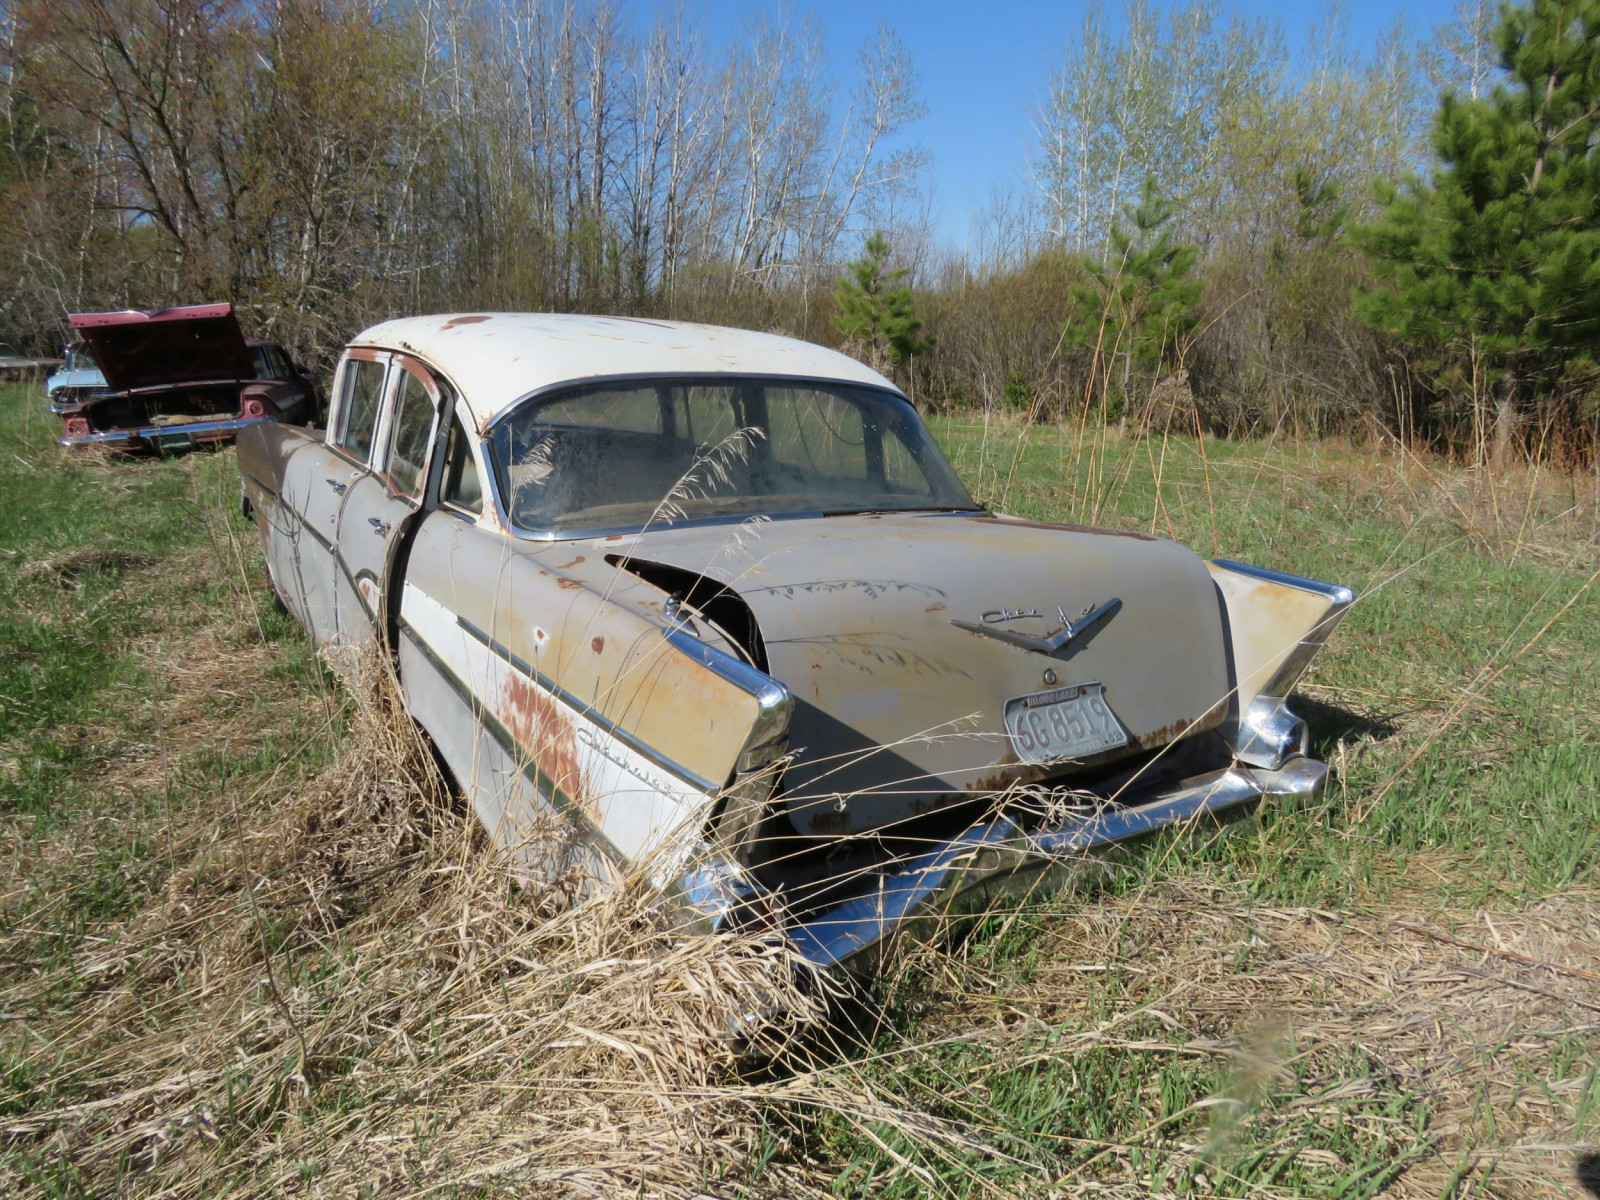 1957 Chevrolet 4dr Sedan parts only - Image 4